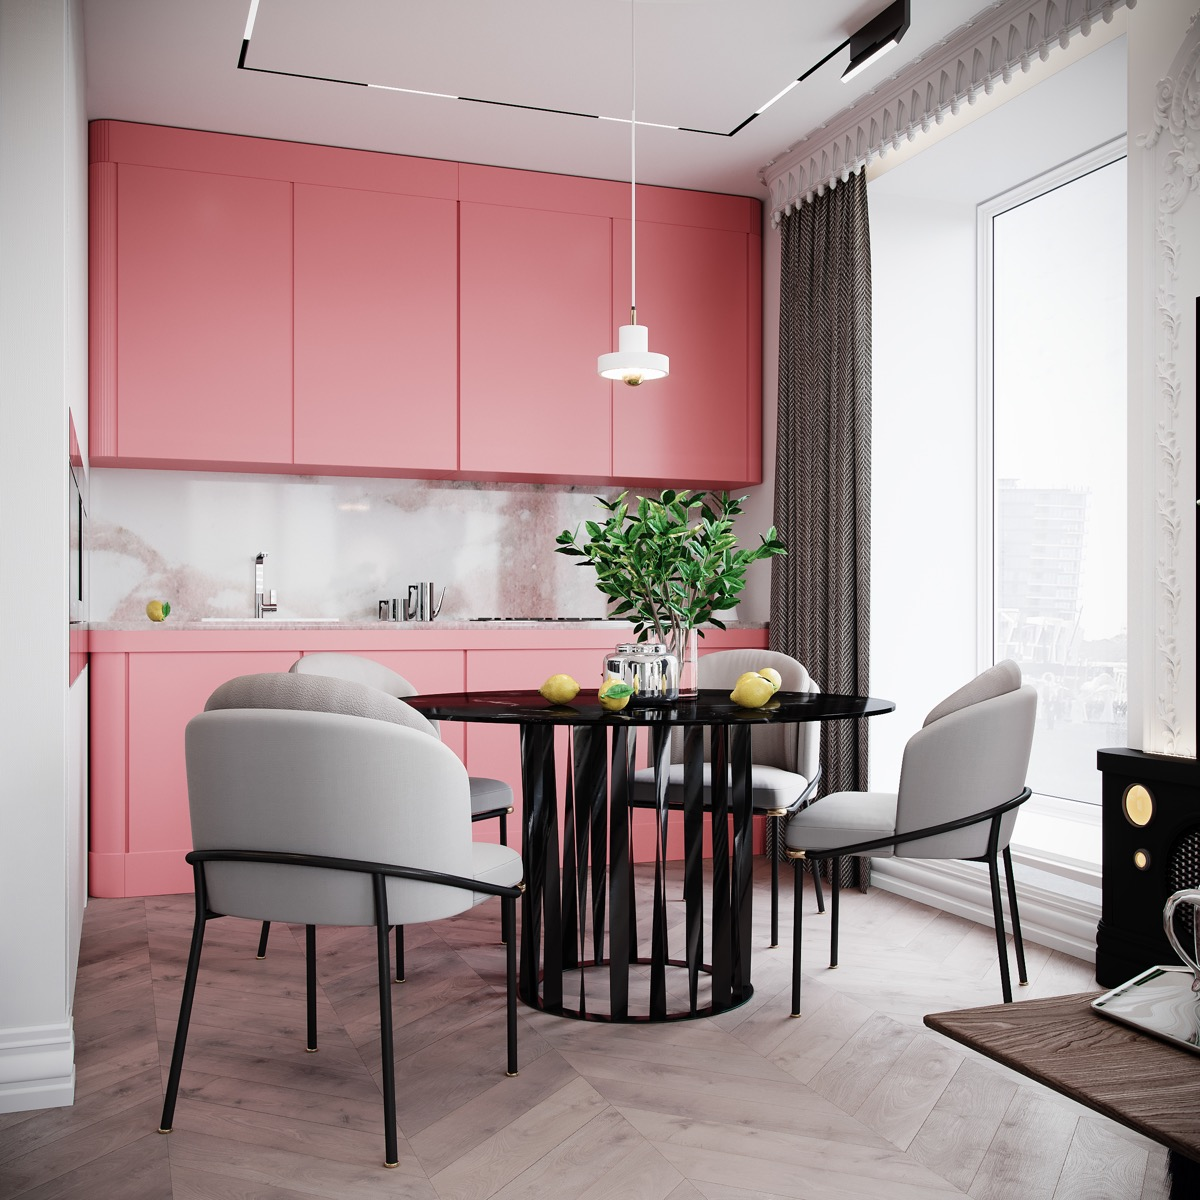 These 20 Stylish Kitchen Designs Will Inspire You To Redesign Yours: 51 Inspirational Pink Kitchens With Tips & Accessories To